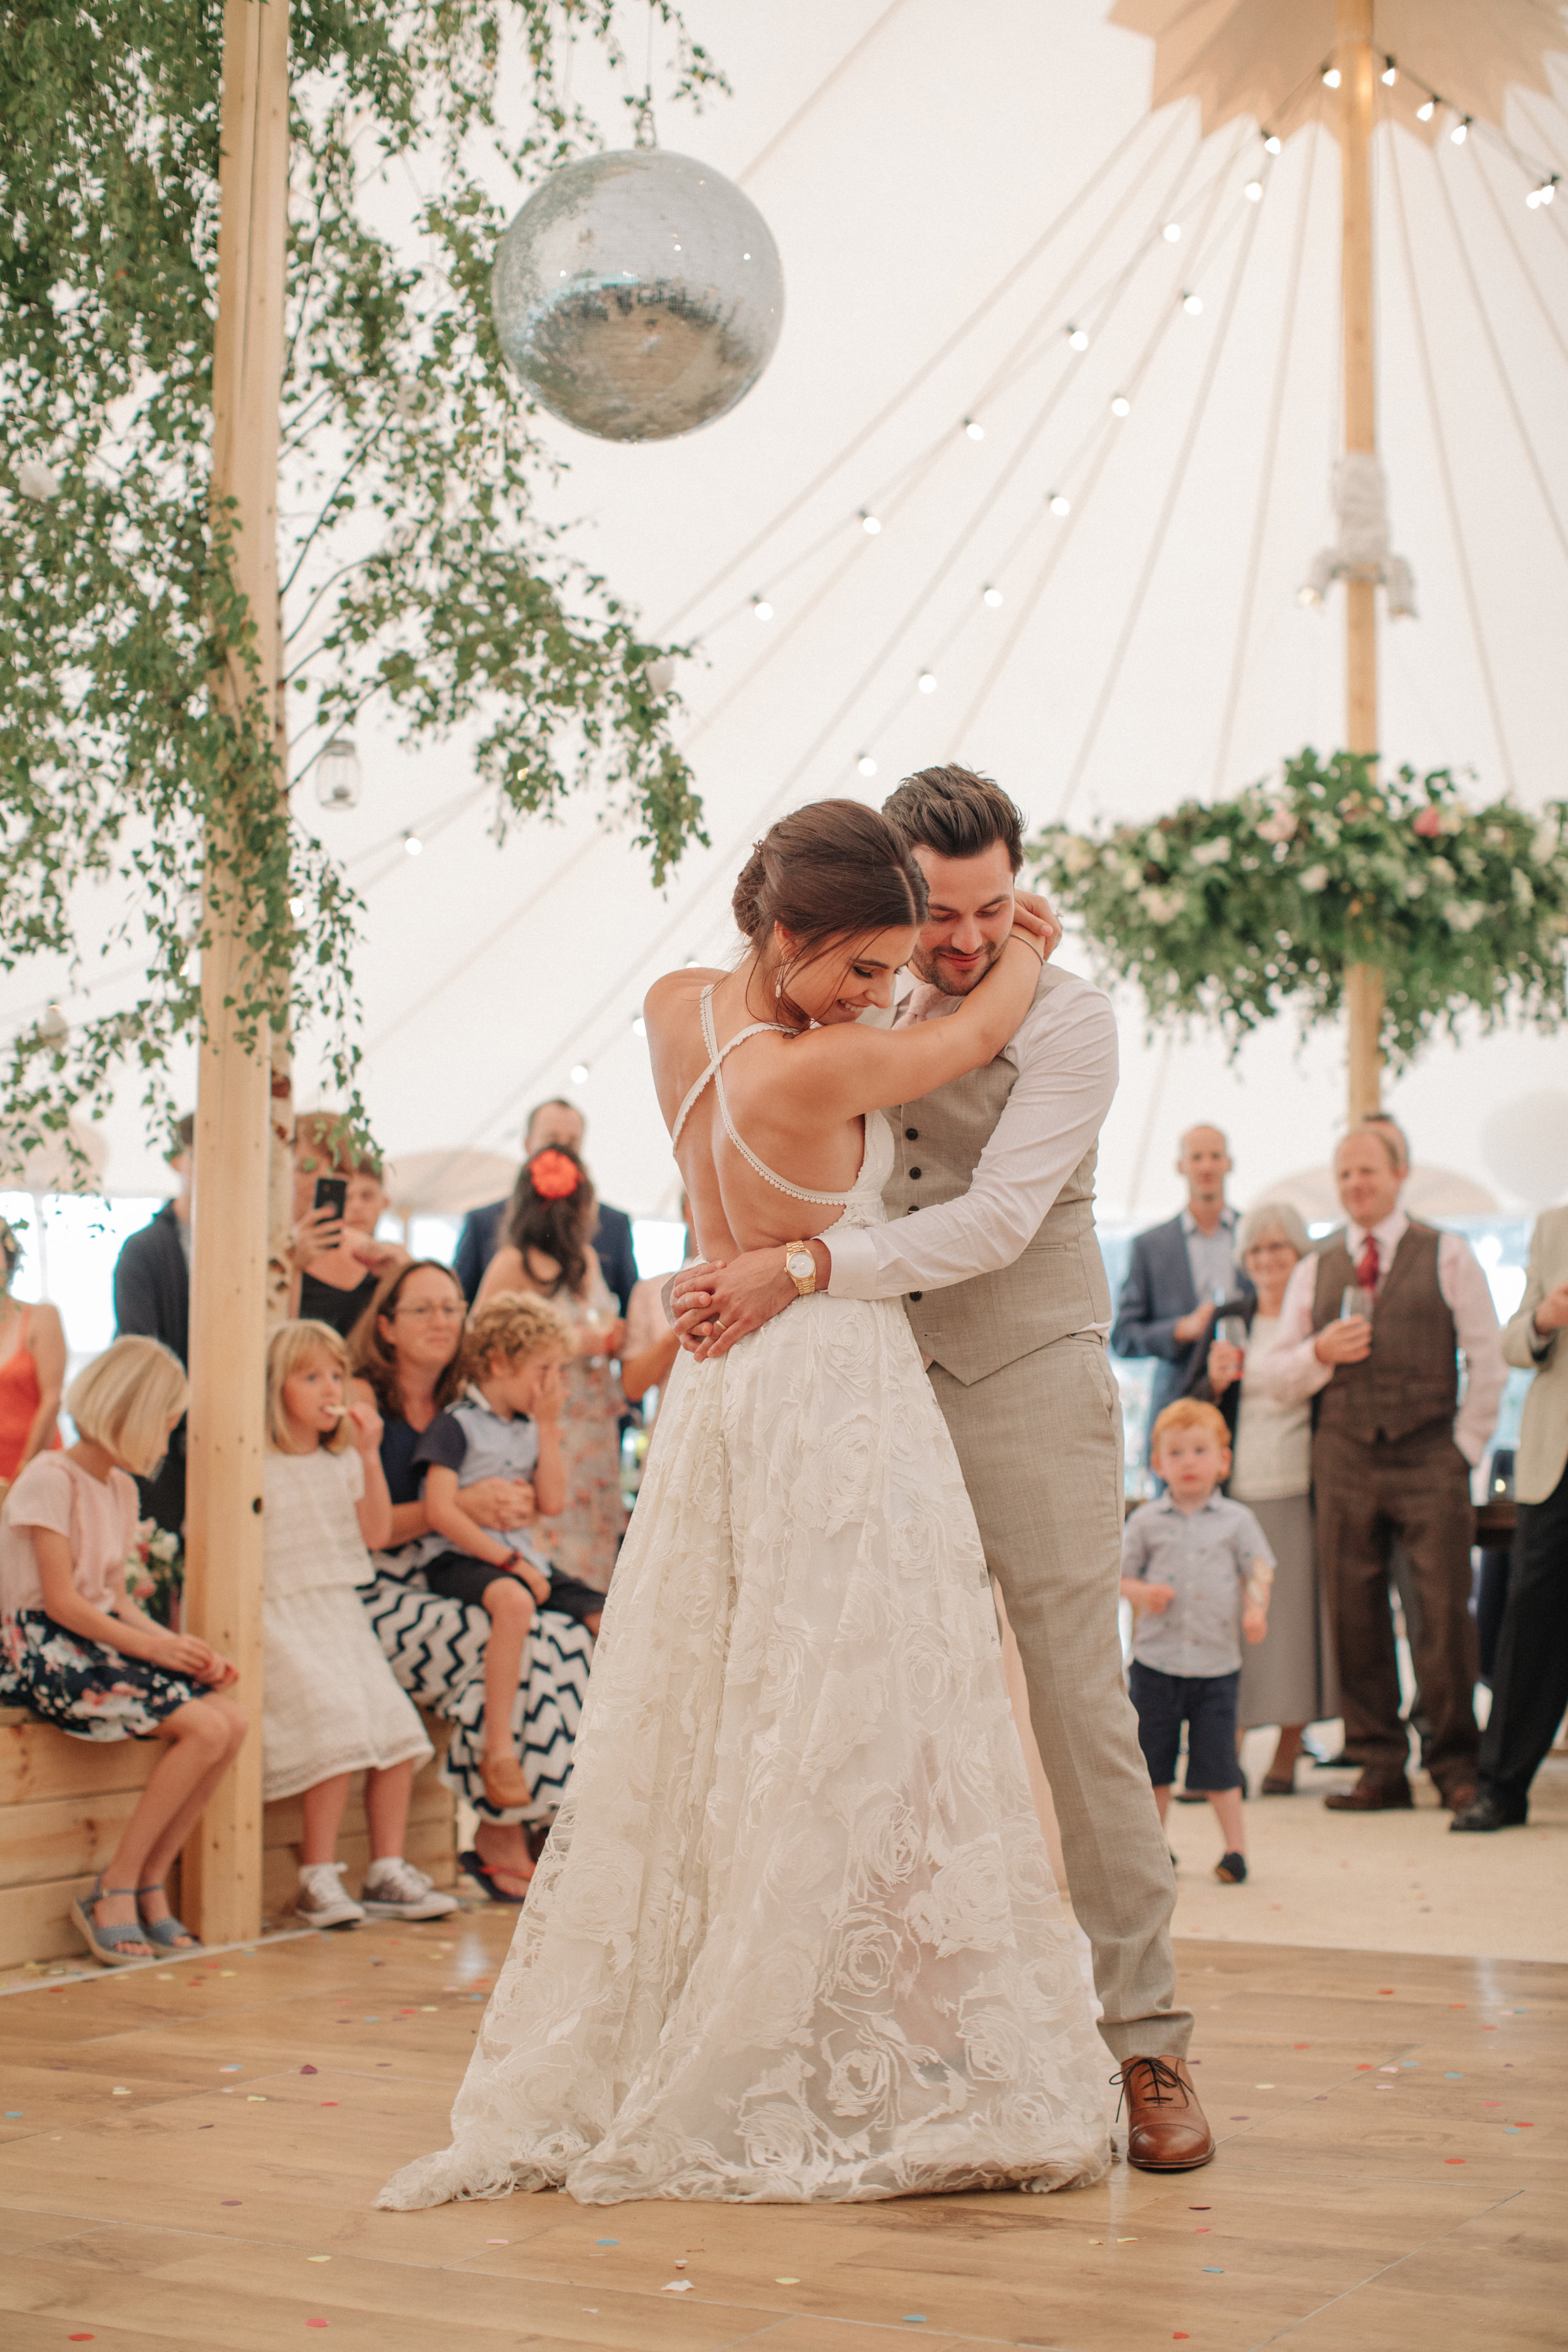 Steph & Ed's PapaKåta Sperry Tent wedding at home in Nottingham captured by M & J Photography: The First Dance